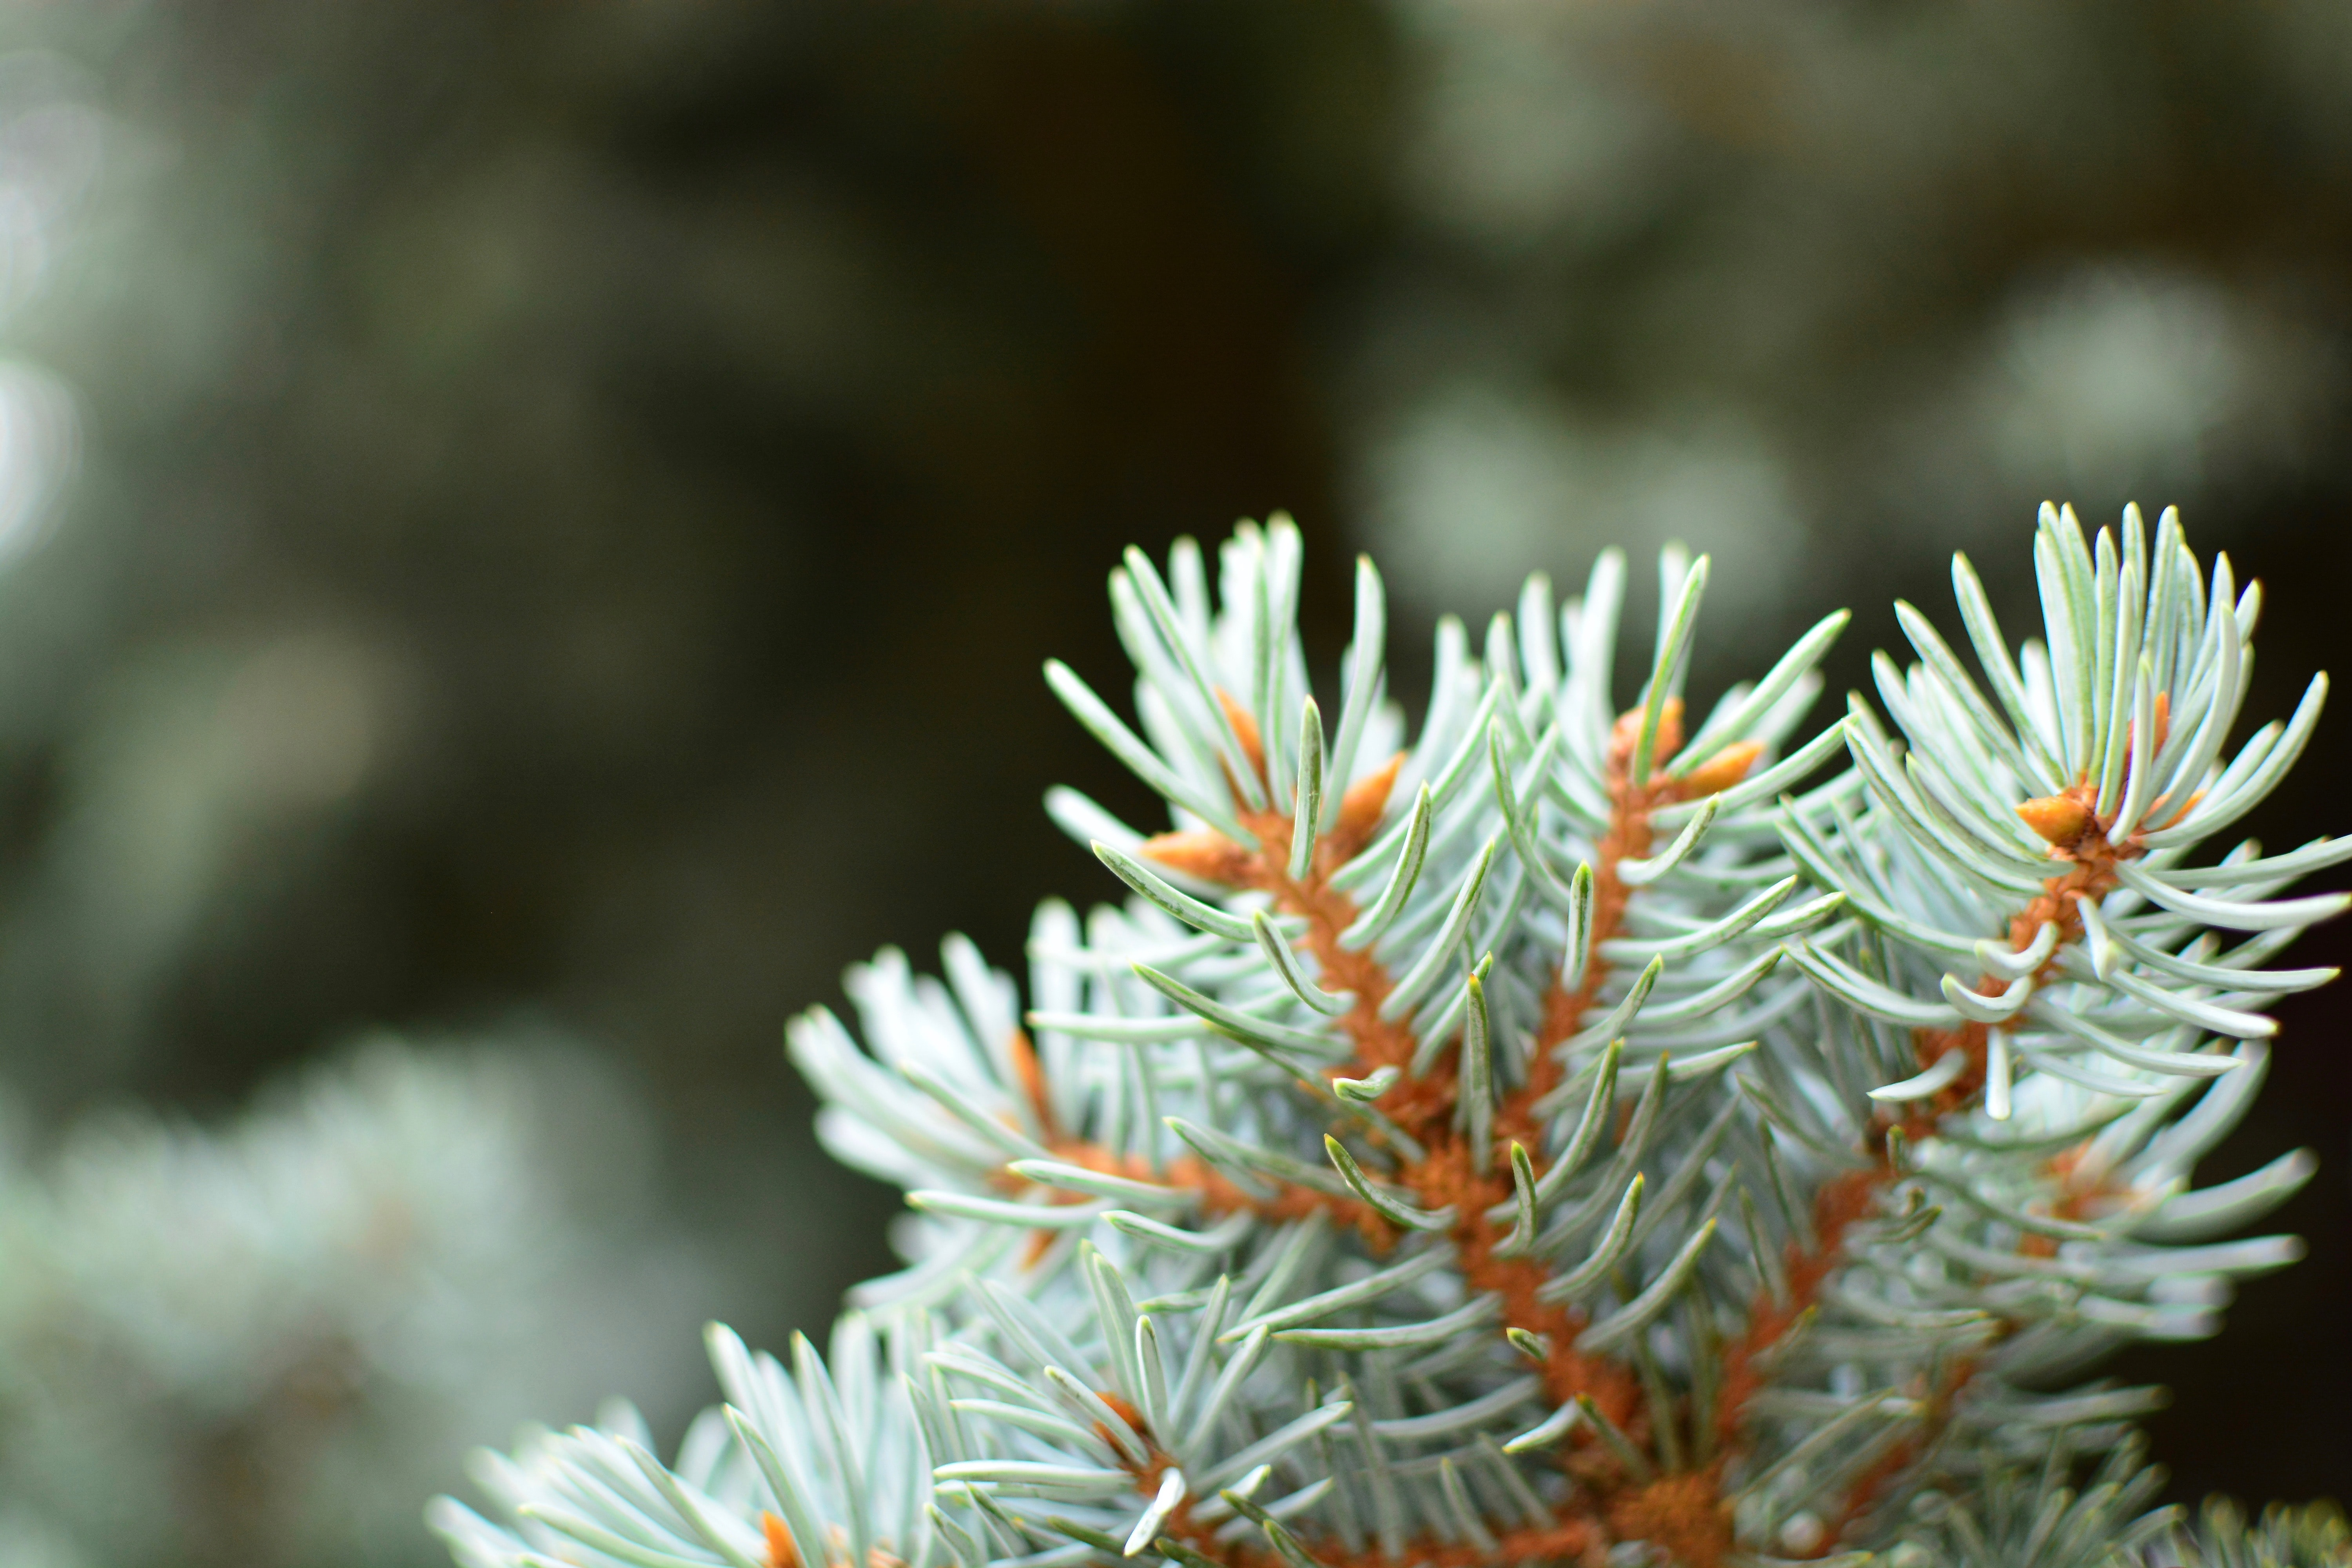 focused photo of a green leafed plant